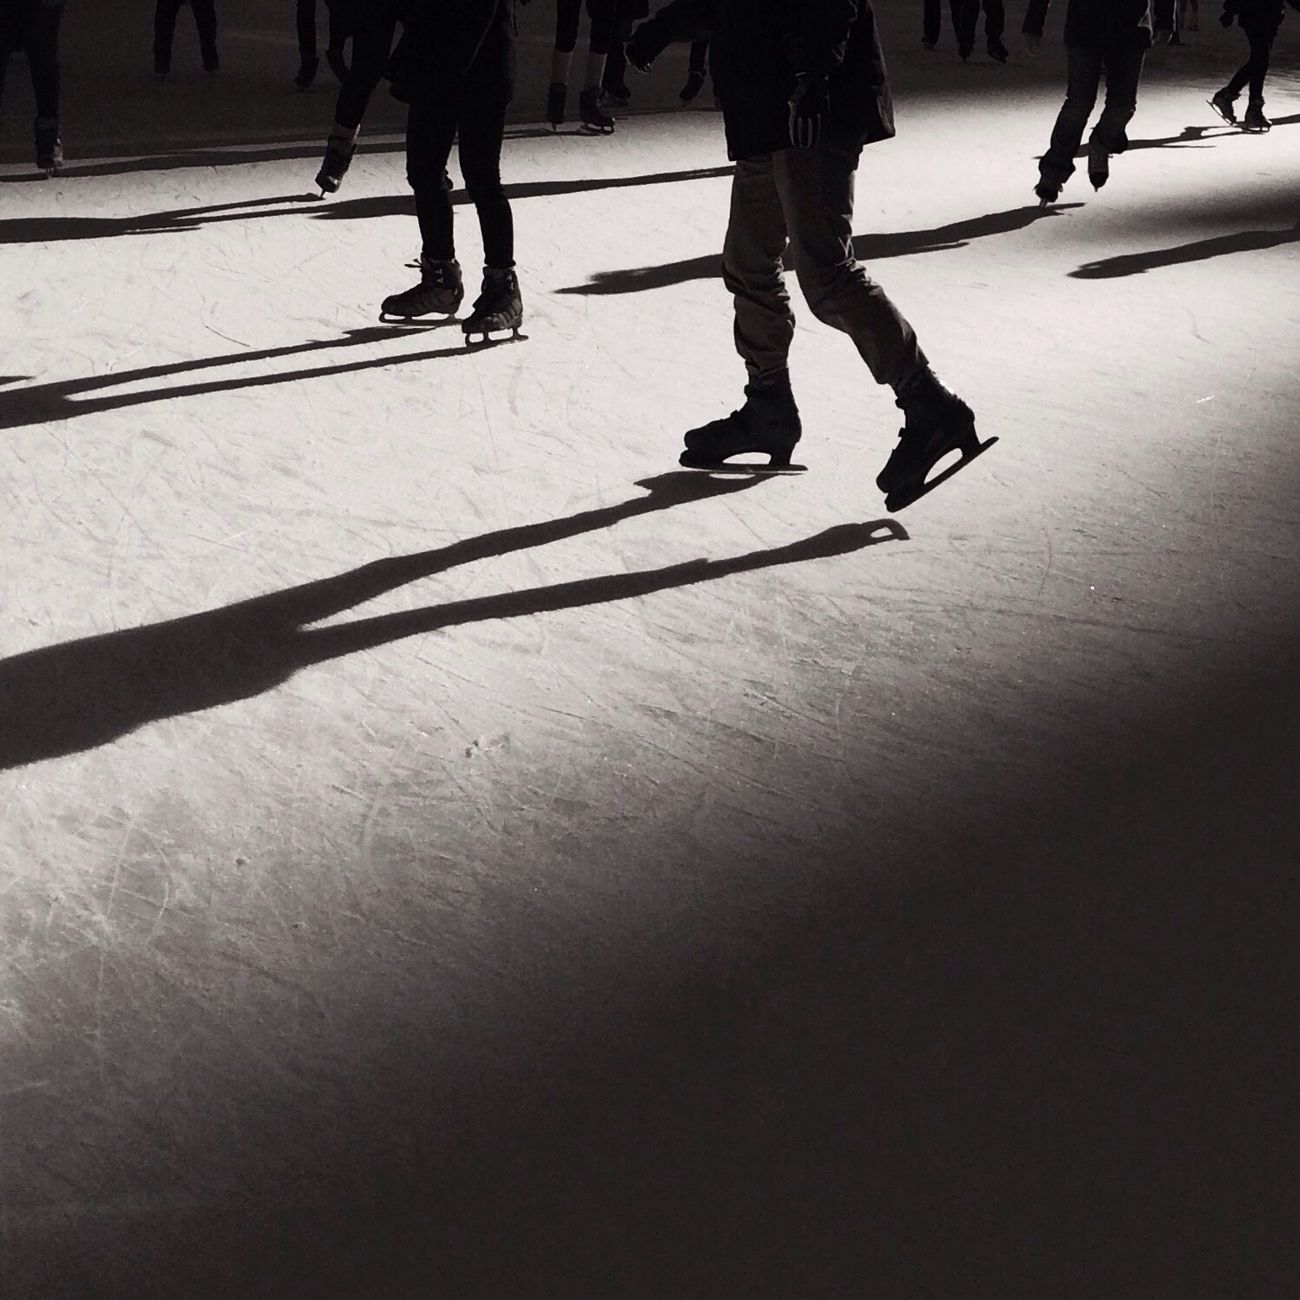 Skating Ice Skating People Watching Blackandwhite